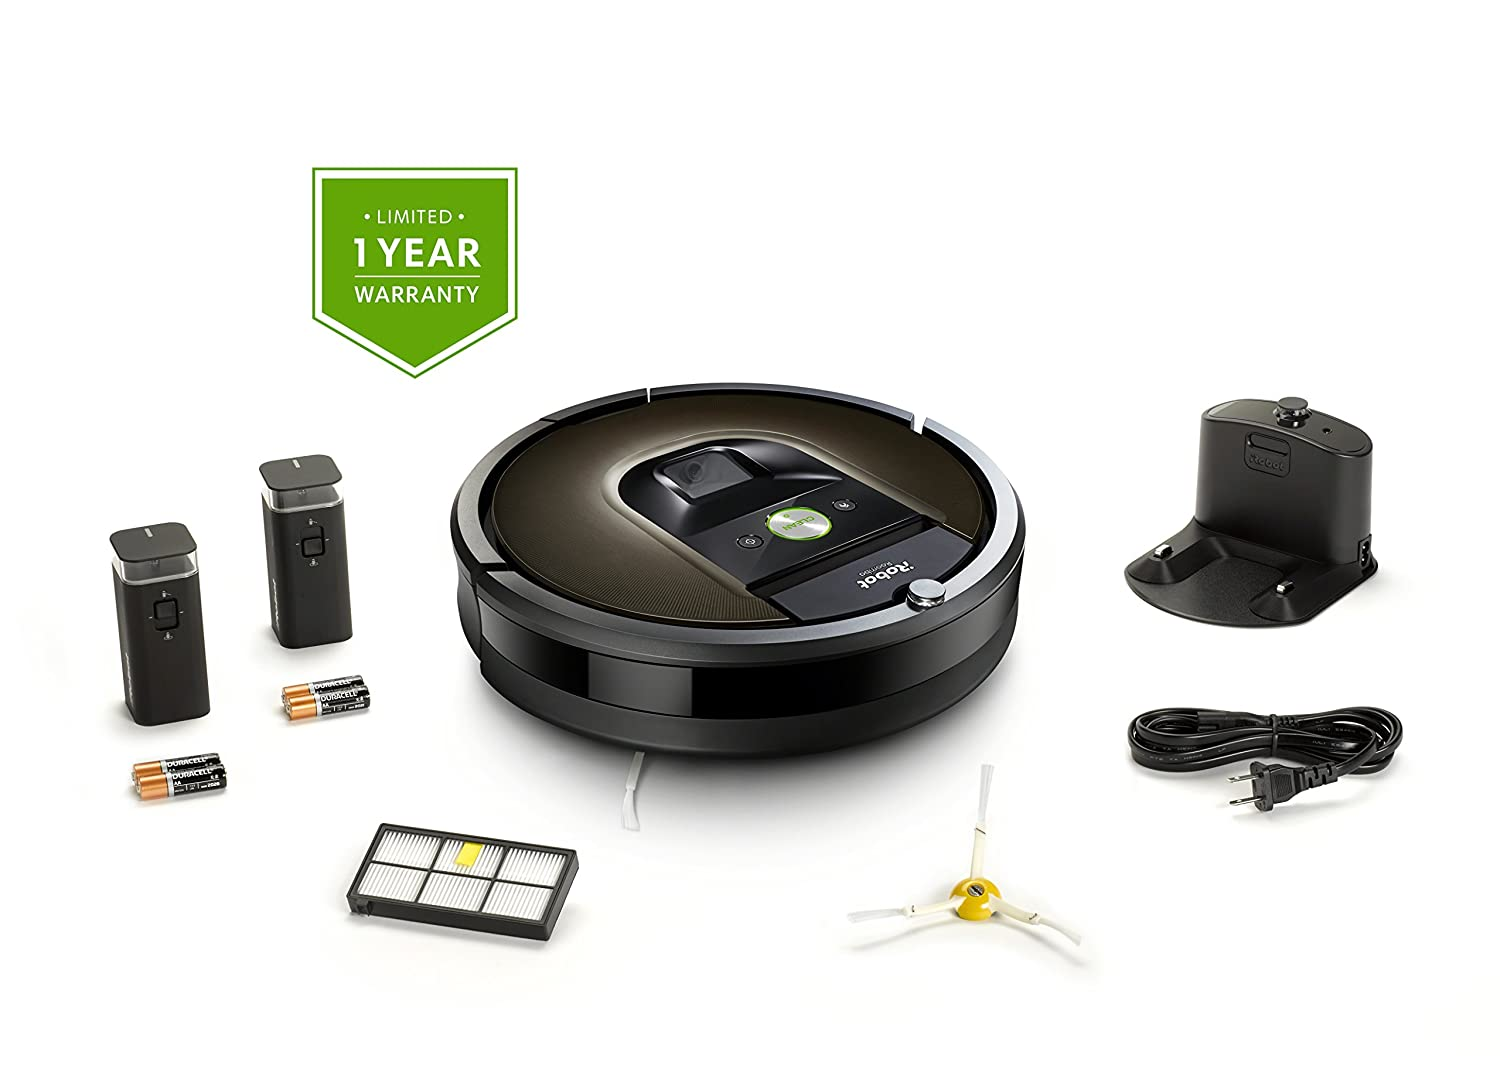 Irobot Roomba 980 Review Does It Clean Pet Hair Well